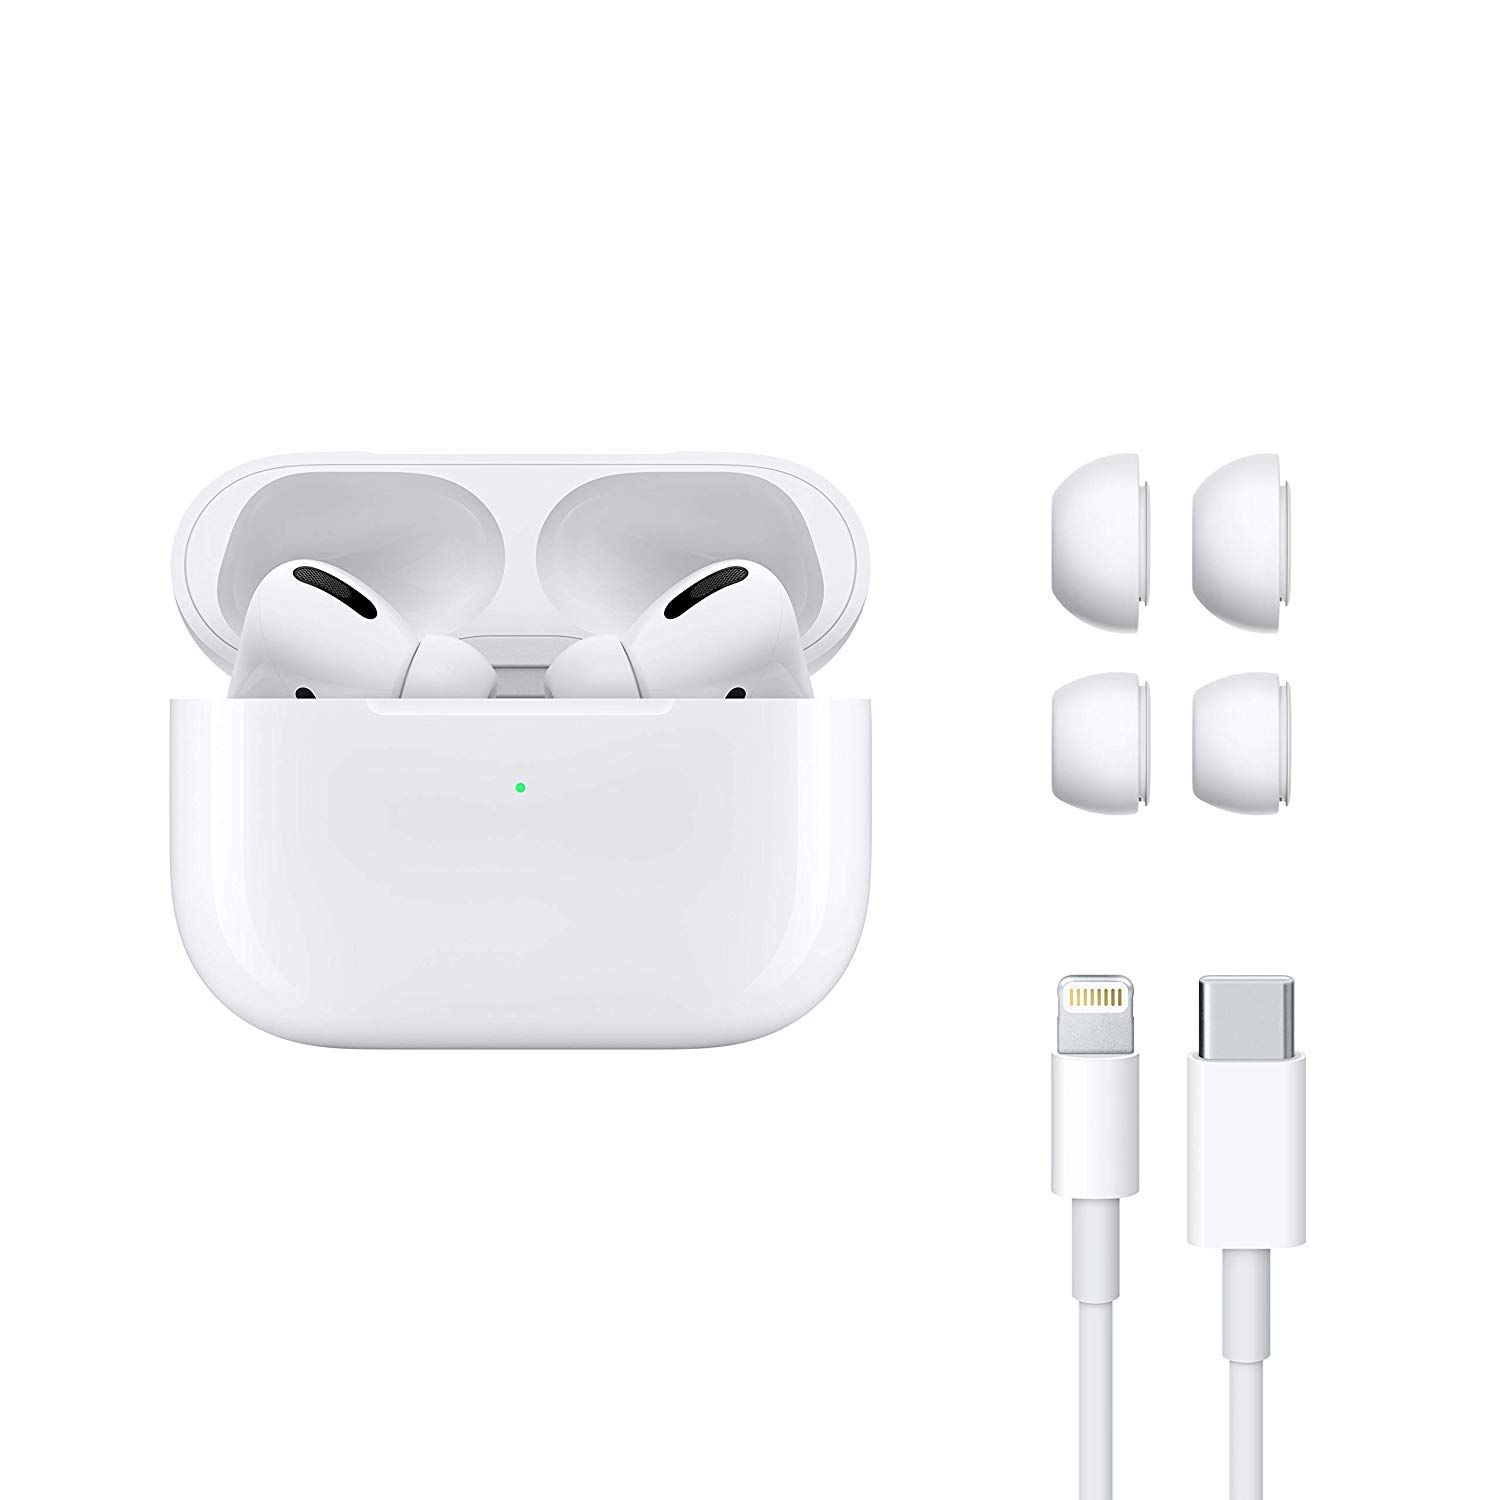 Apple Airpods Pro Features >Active noise cancellation for